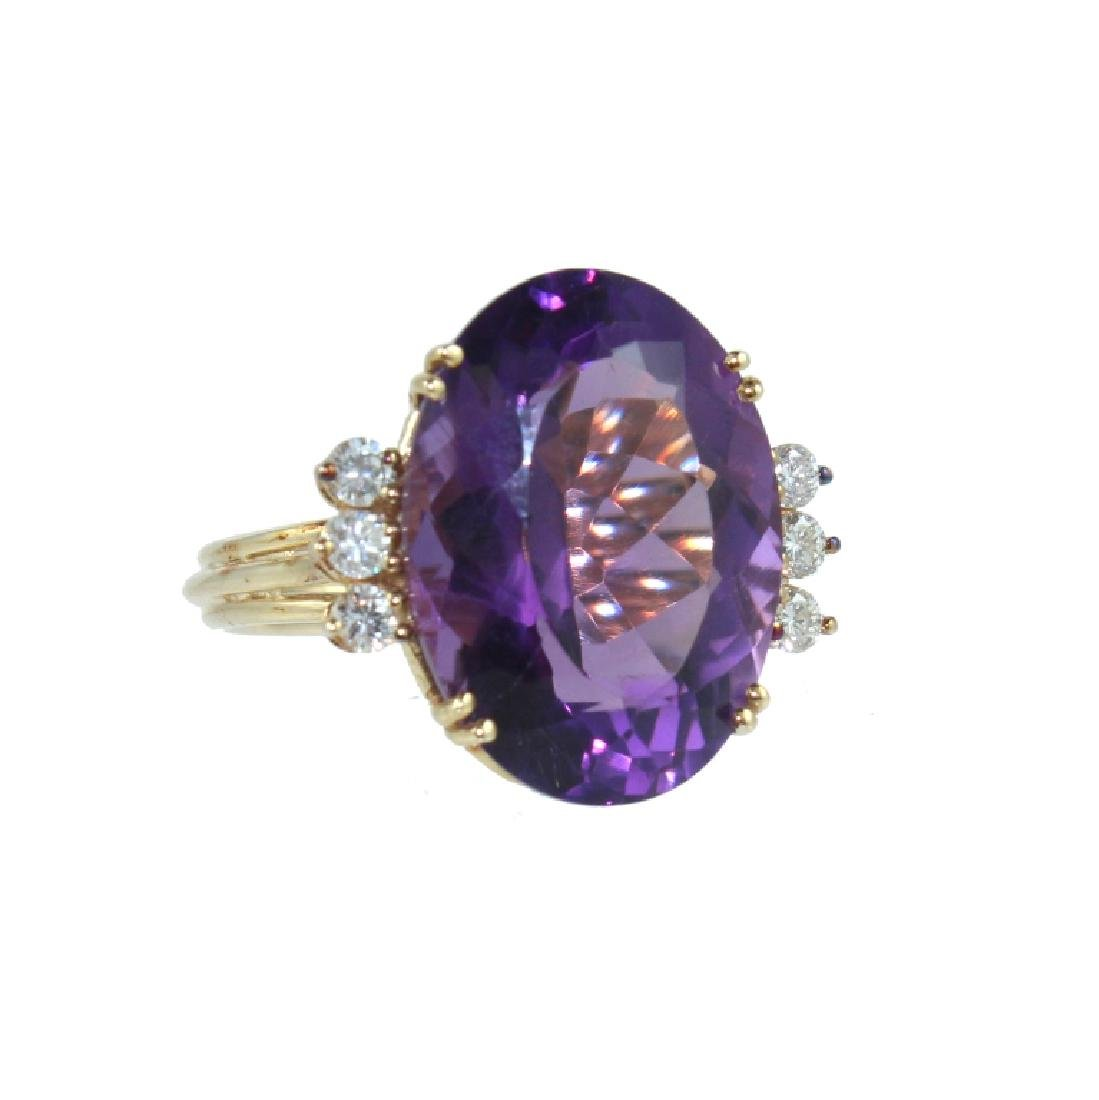 14 KARAT AMETHYST & DIAMOND RING